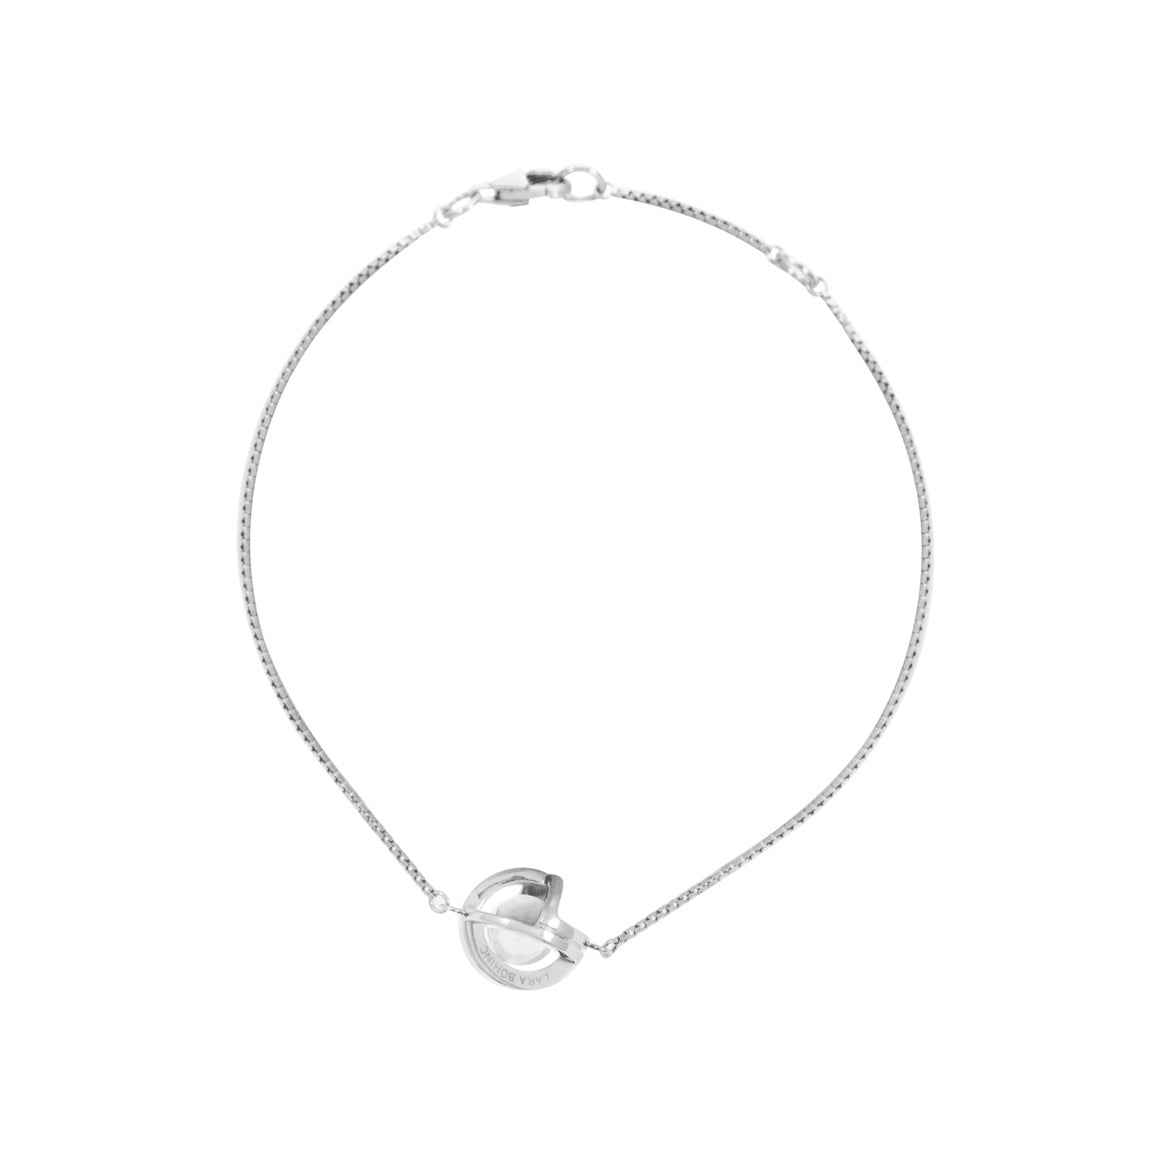 Planetaria Chain Bracelet 10 </br> Rhodium on Sterling Silver